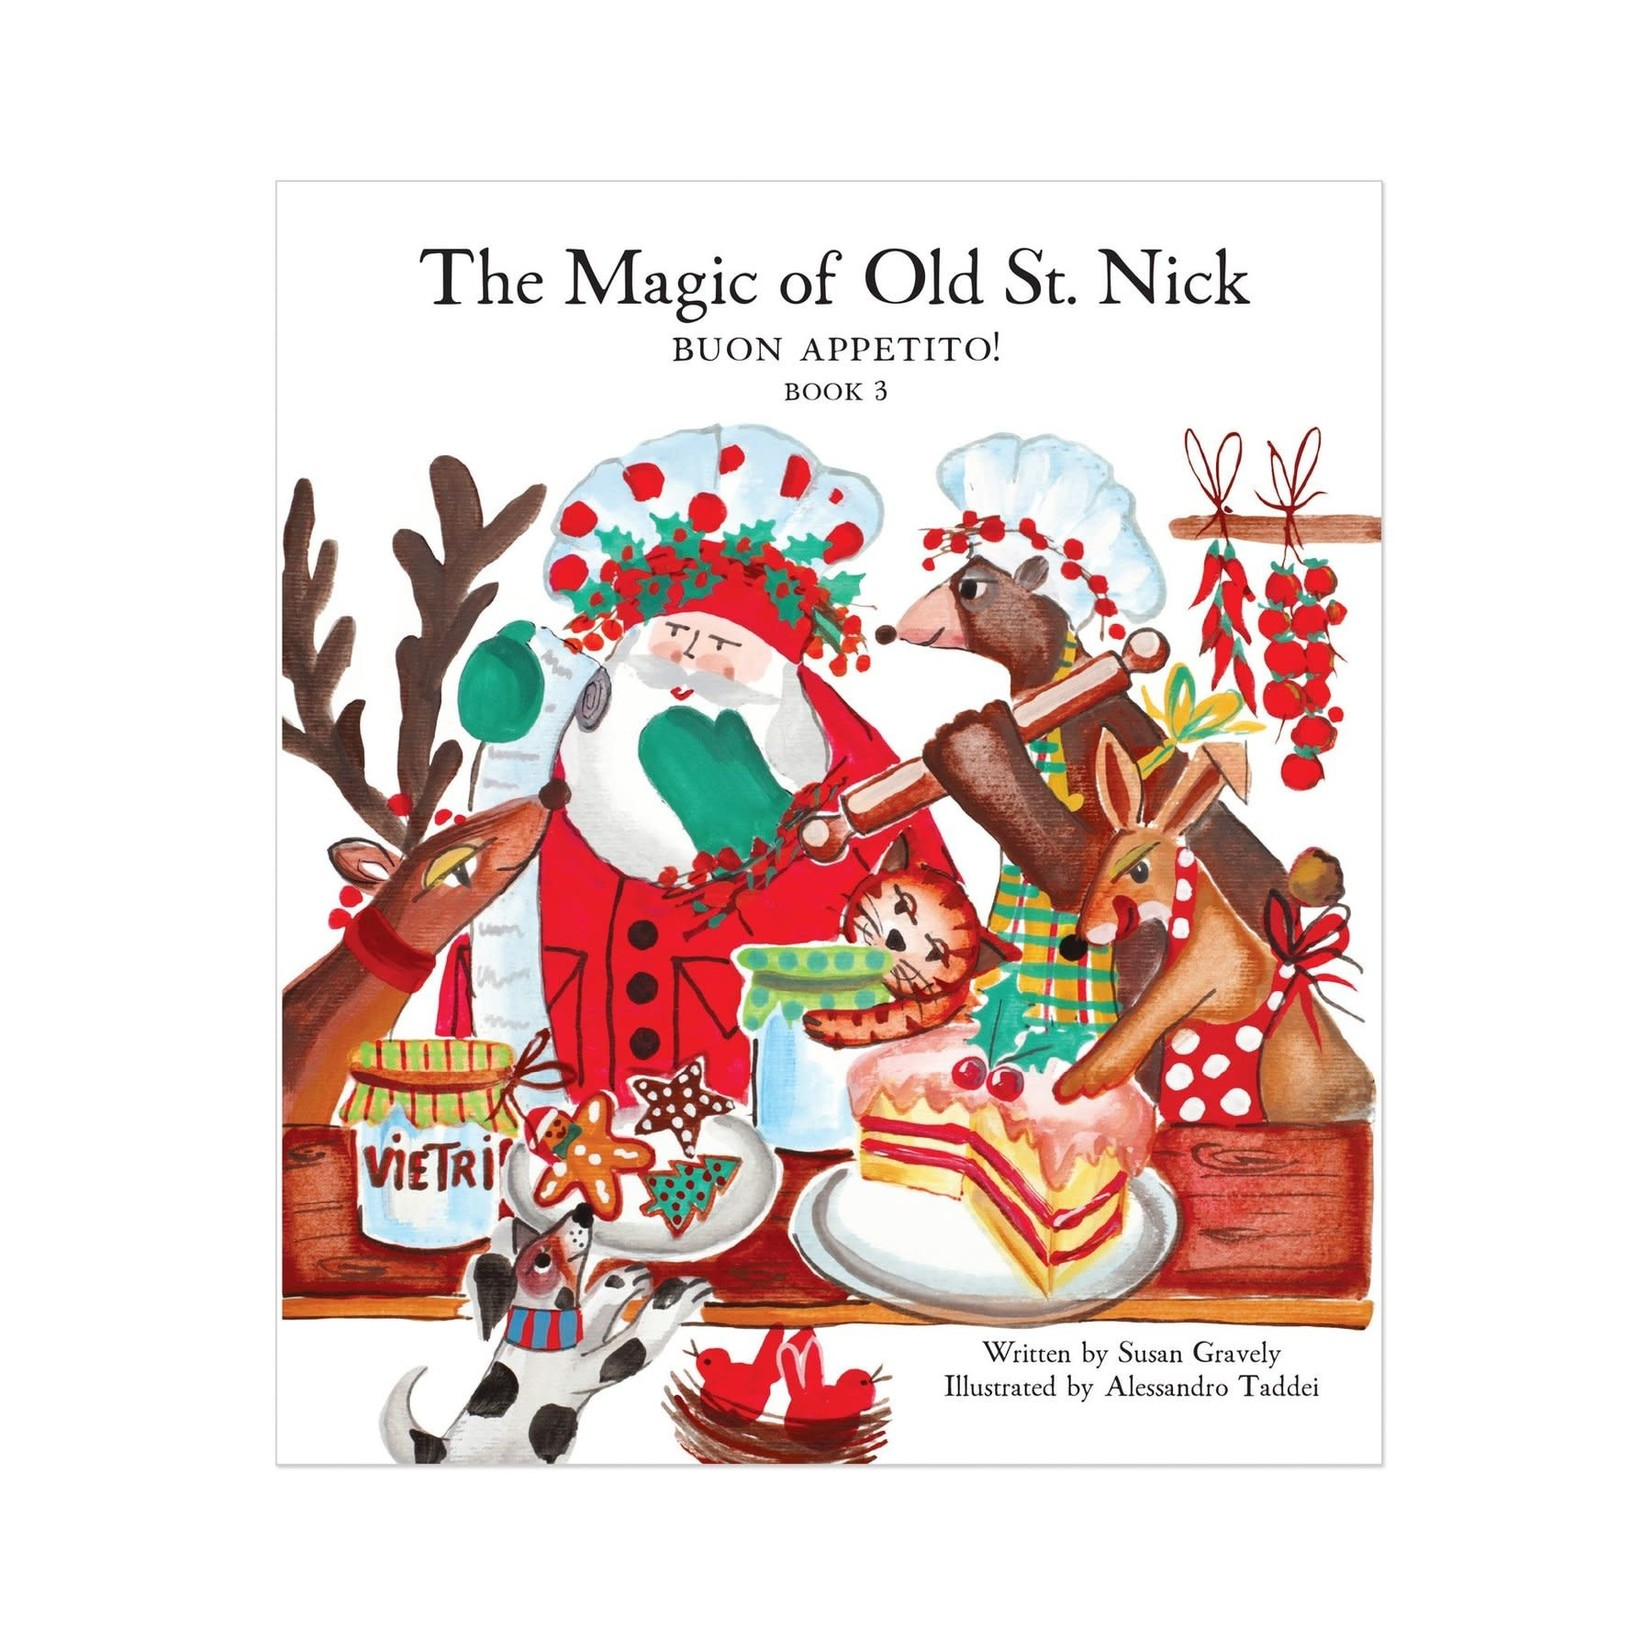 The Magic of Old St. Nick Buon Appetito